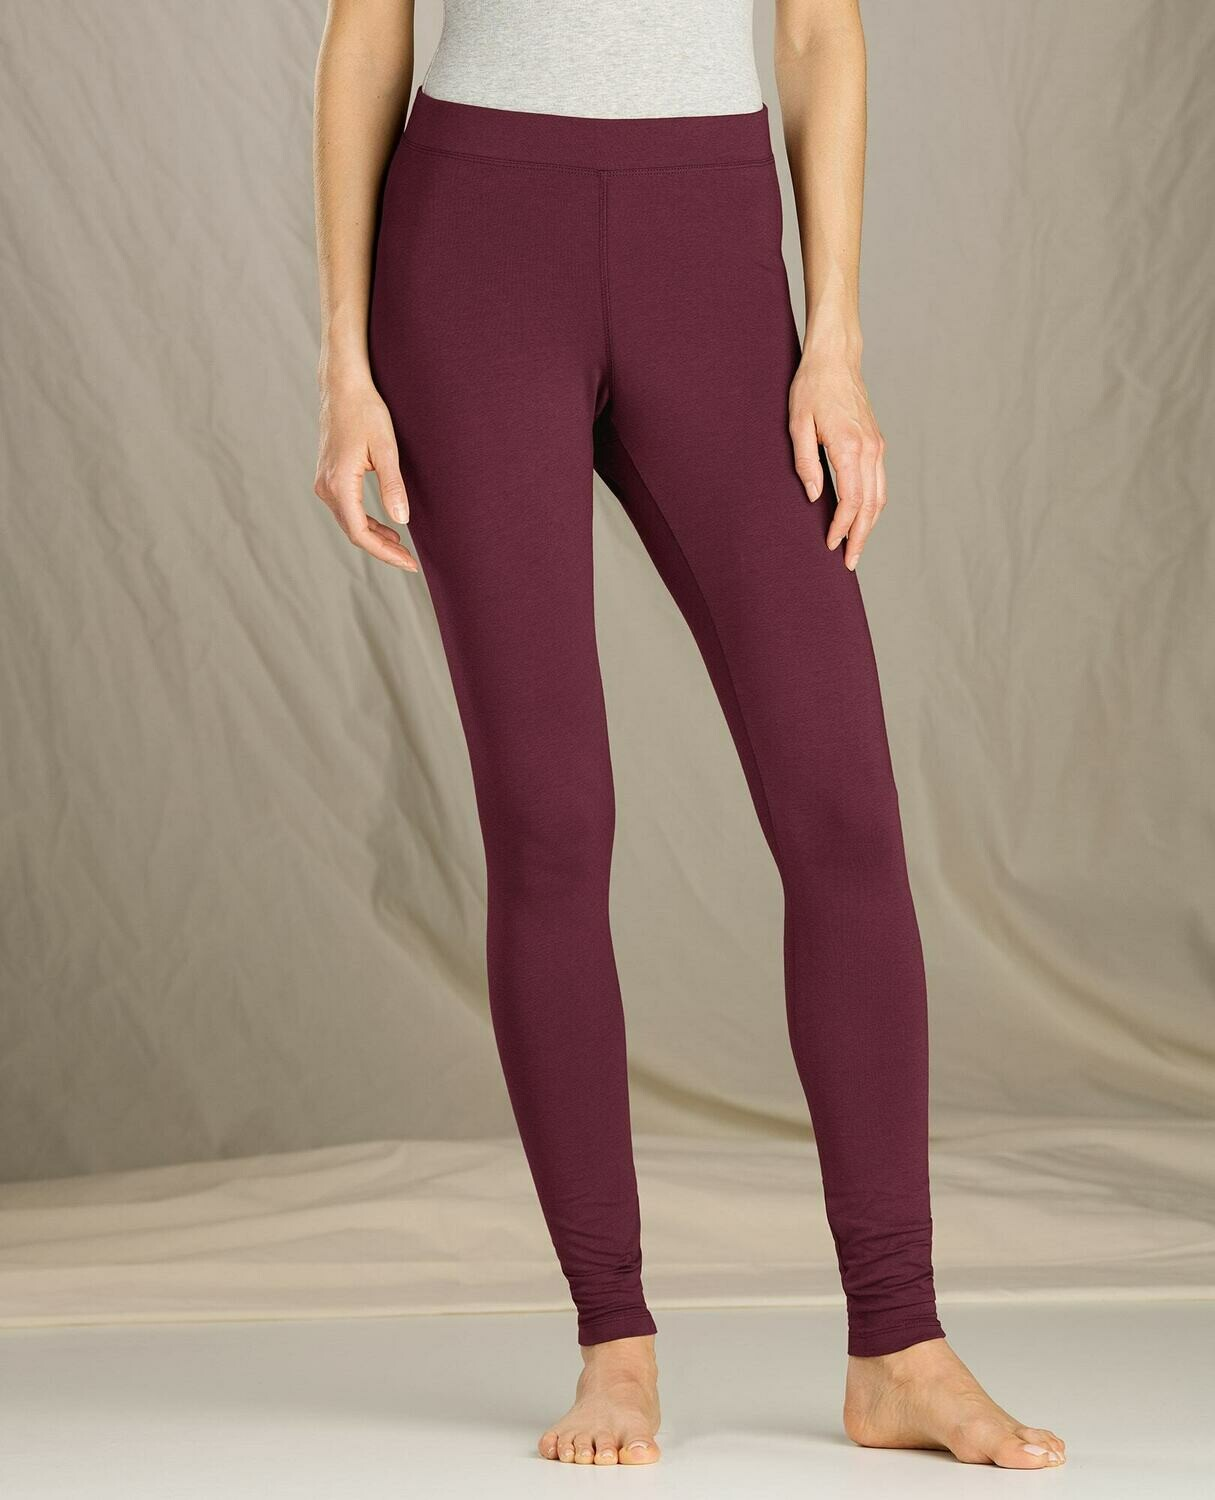 TOAD&CO LEAN LEGGING